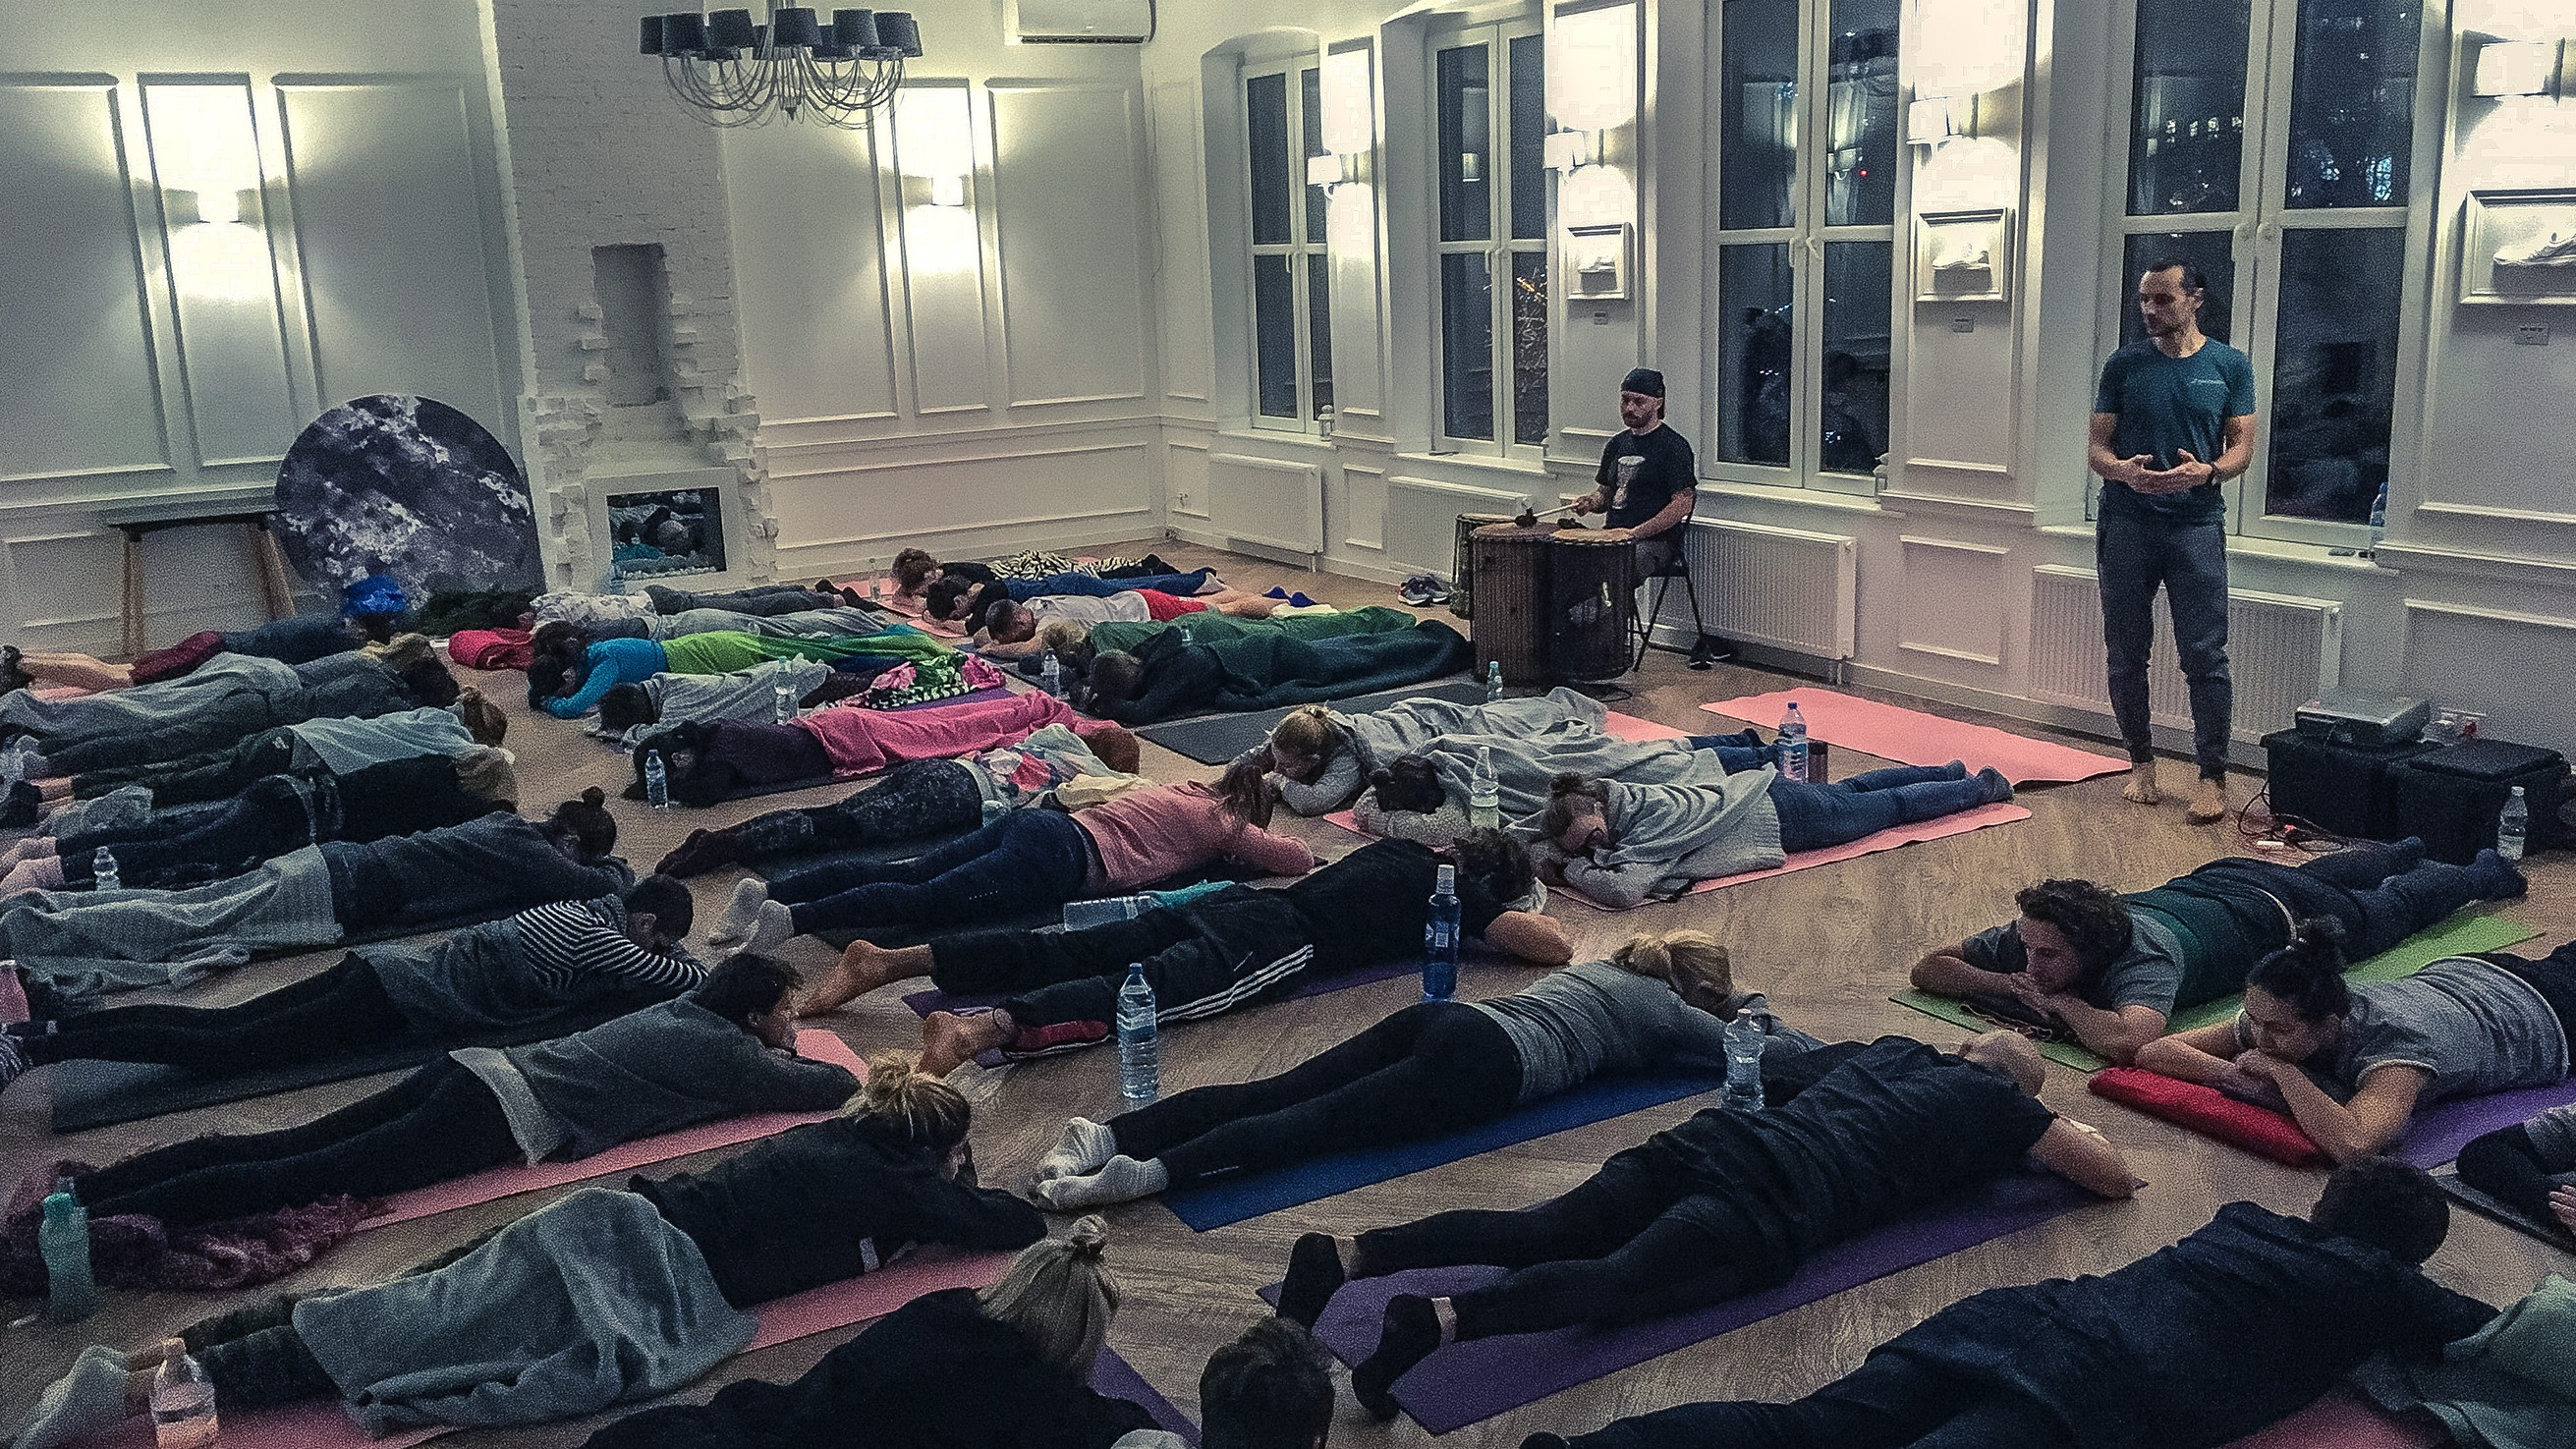 Image 11 of 11 - Experience the Wim Hof Method to get an impression of  at